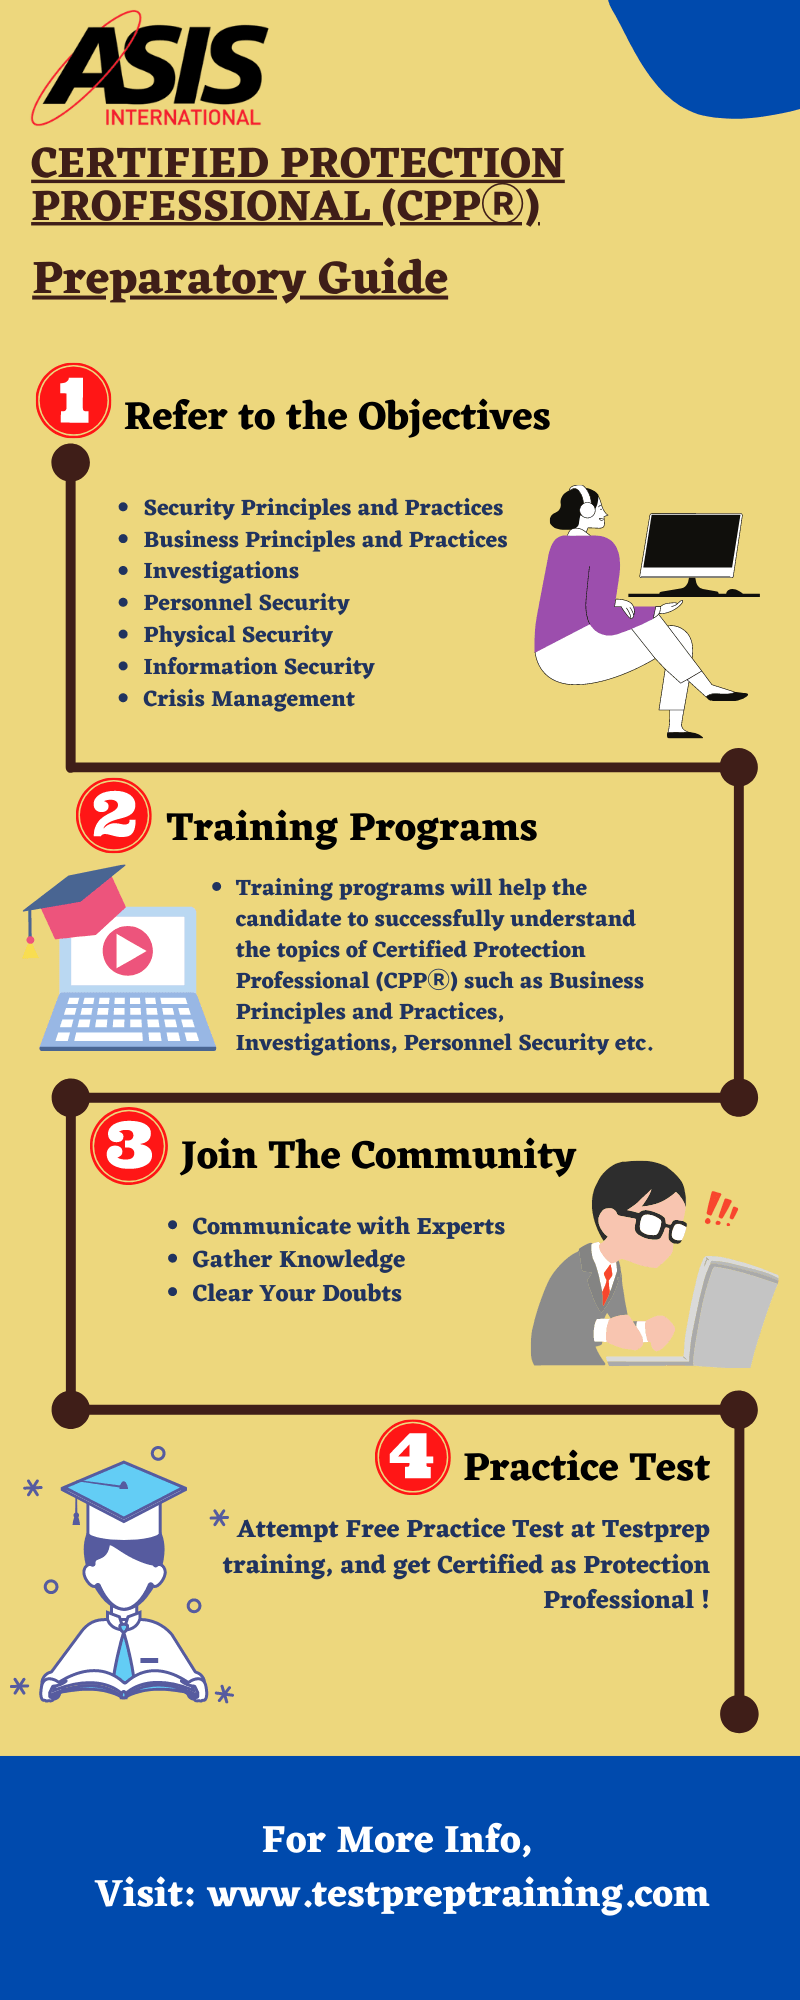 Certified Protection Professional (CPPⓇ) preparatory guide